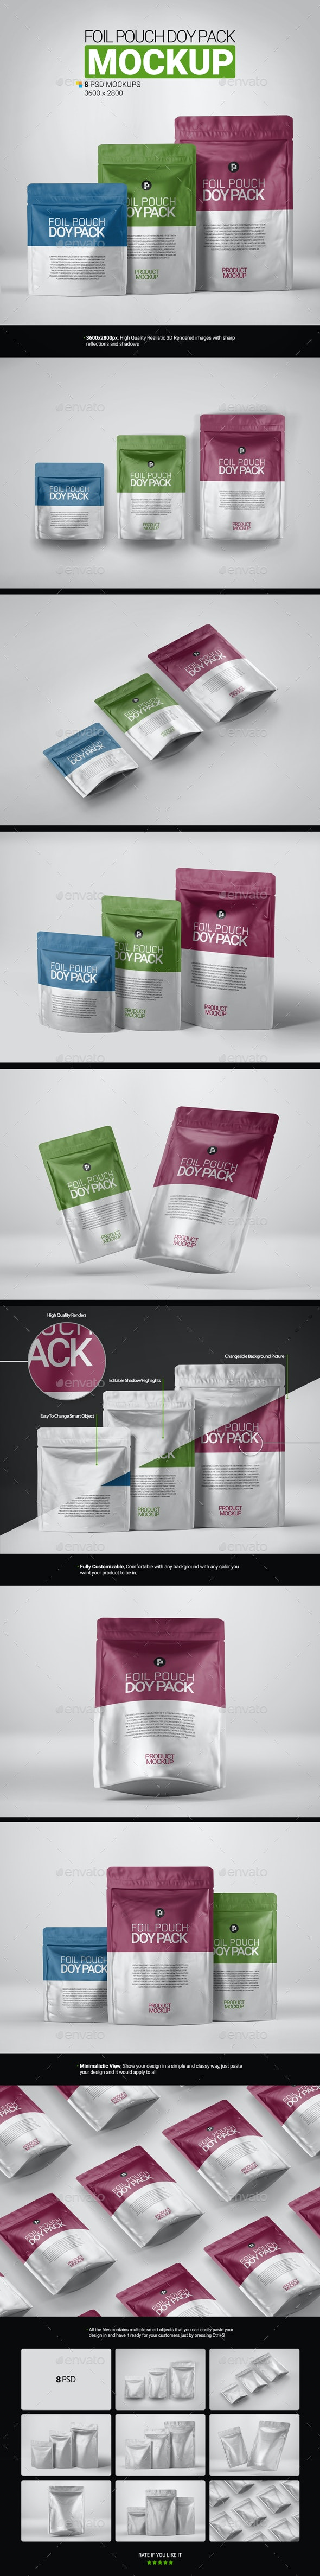 Foil Pouch Doypack Mockup - Food and Drink Packaging